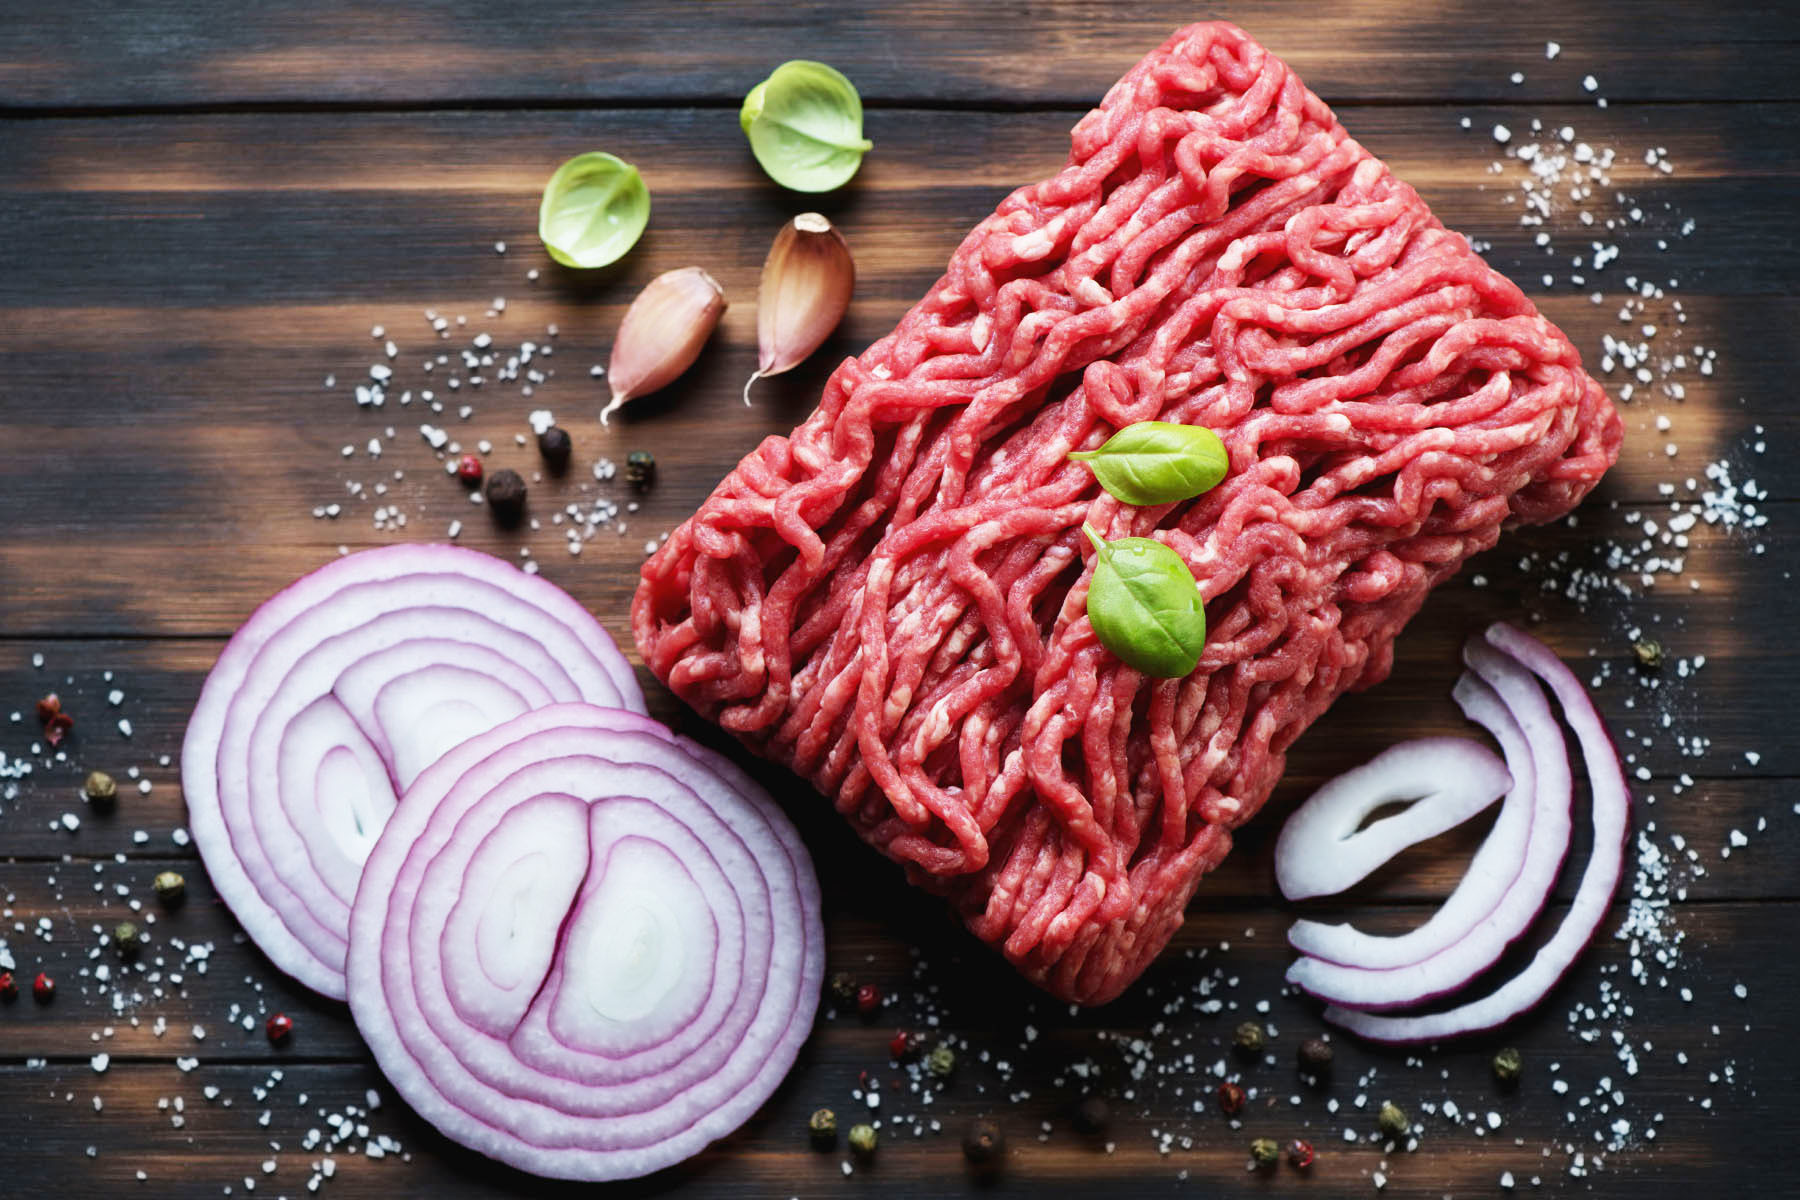 20 Pk Ground Beef Bundle